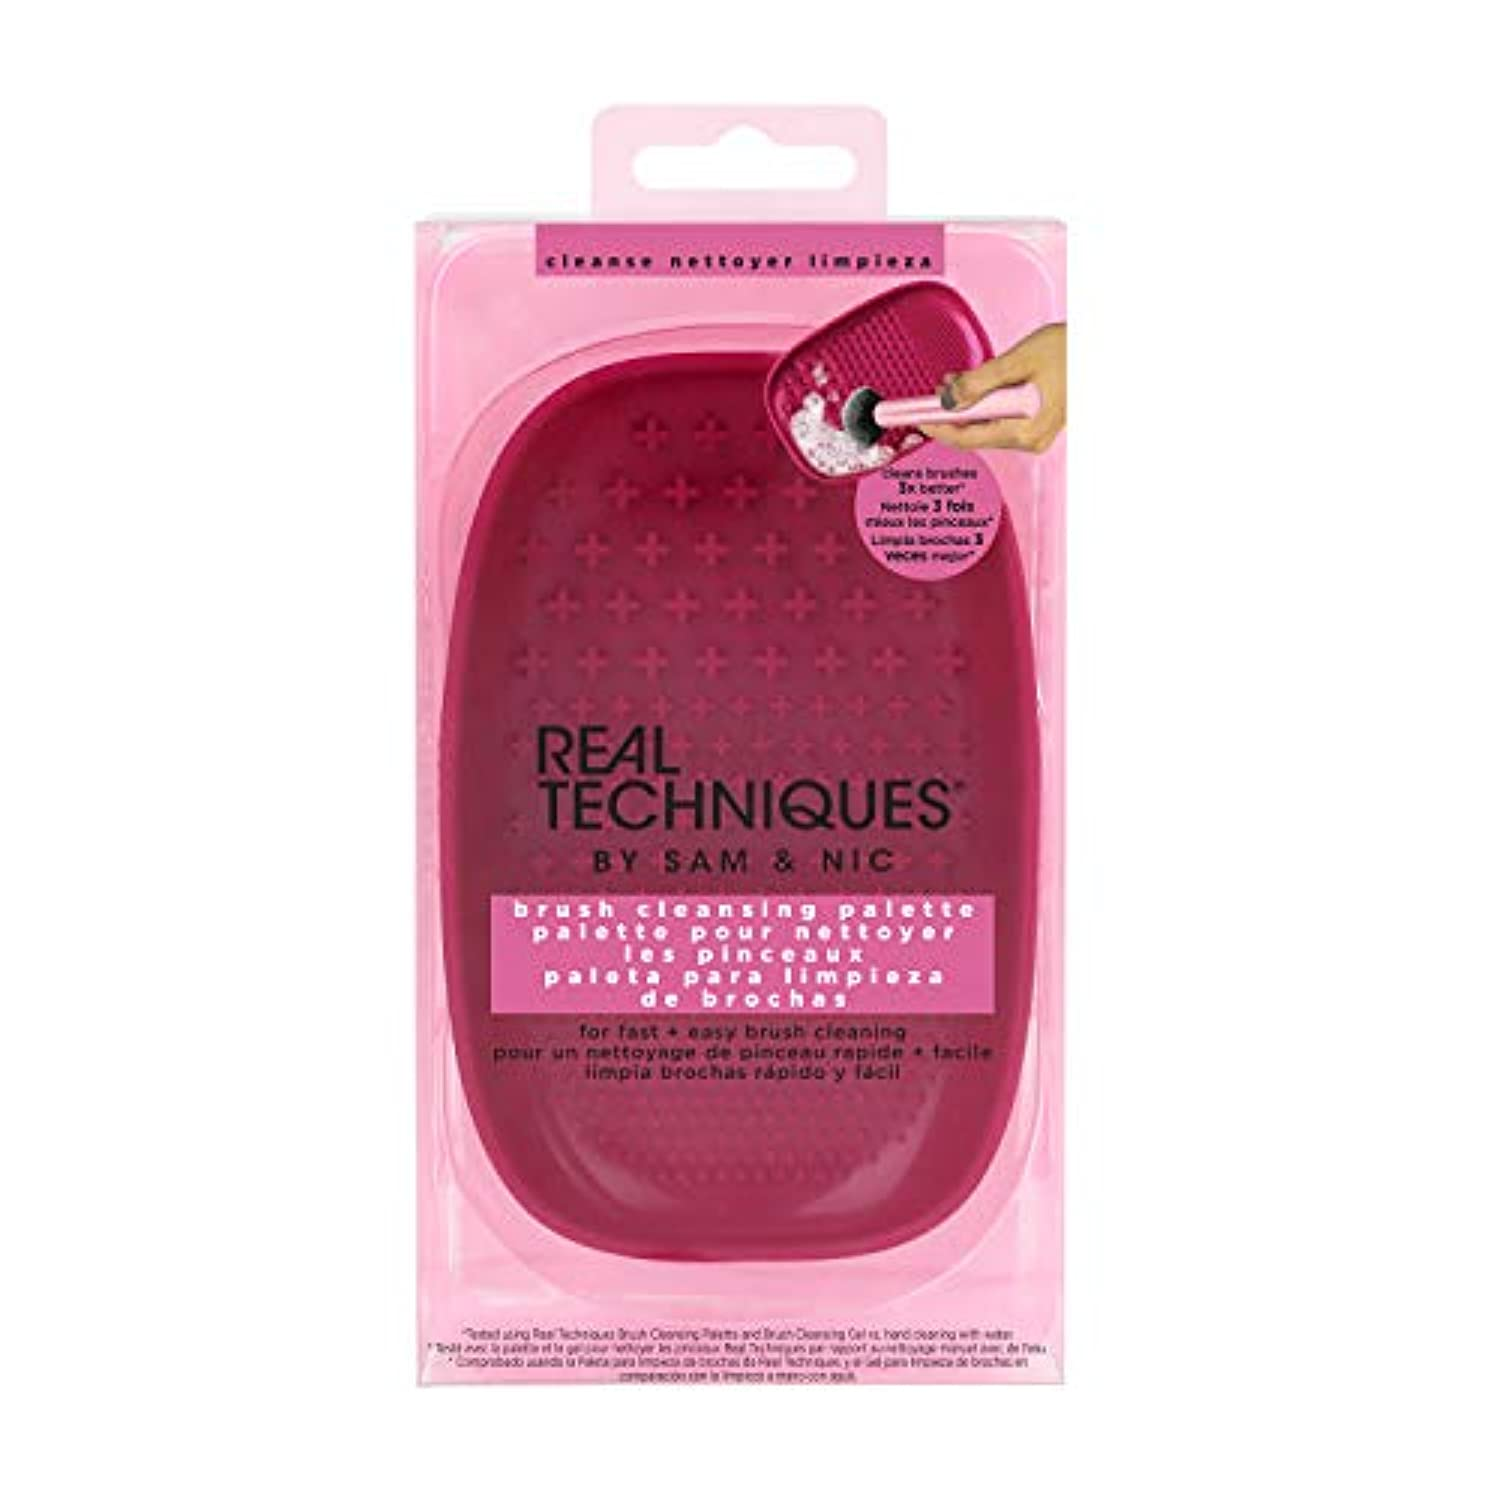 三角形正午アコーReal Techniques brush cleansing palette (並行輸入品)